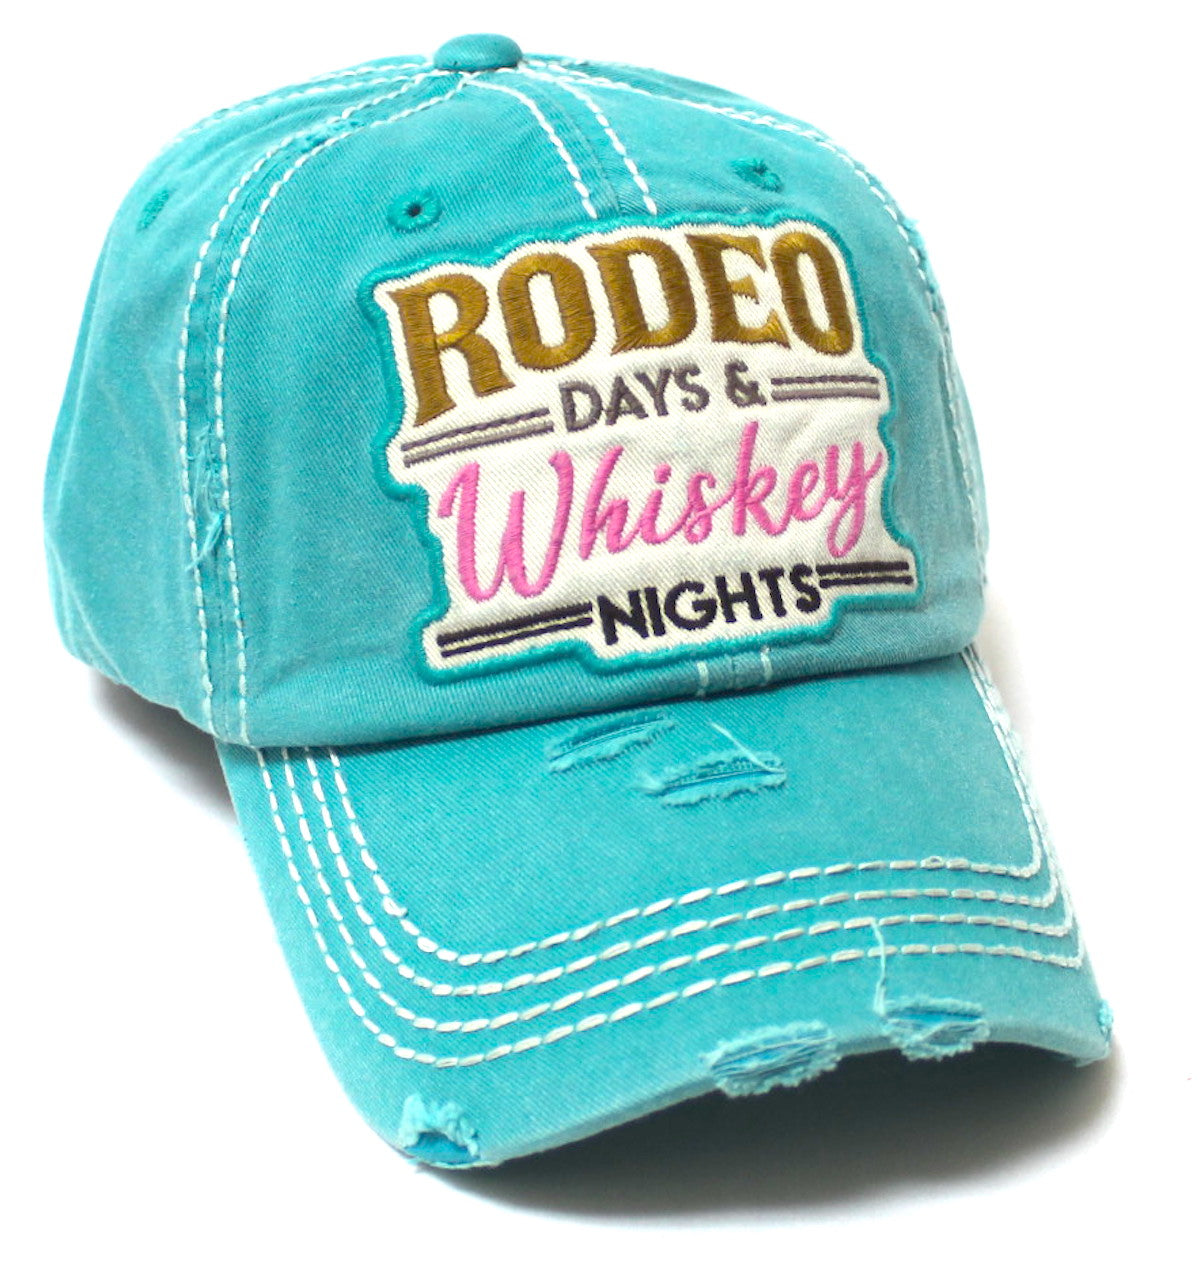 Rodeo Days Whiskey Nights Baseball Cap - Distressed Hats for Women - Summer Style Accessory in California Blue - Caps 'N Vintage